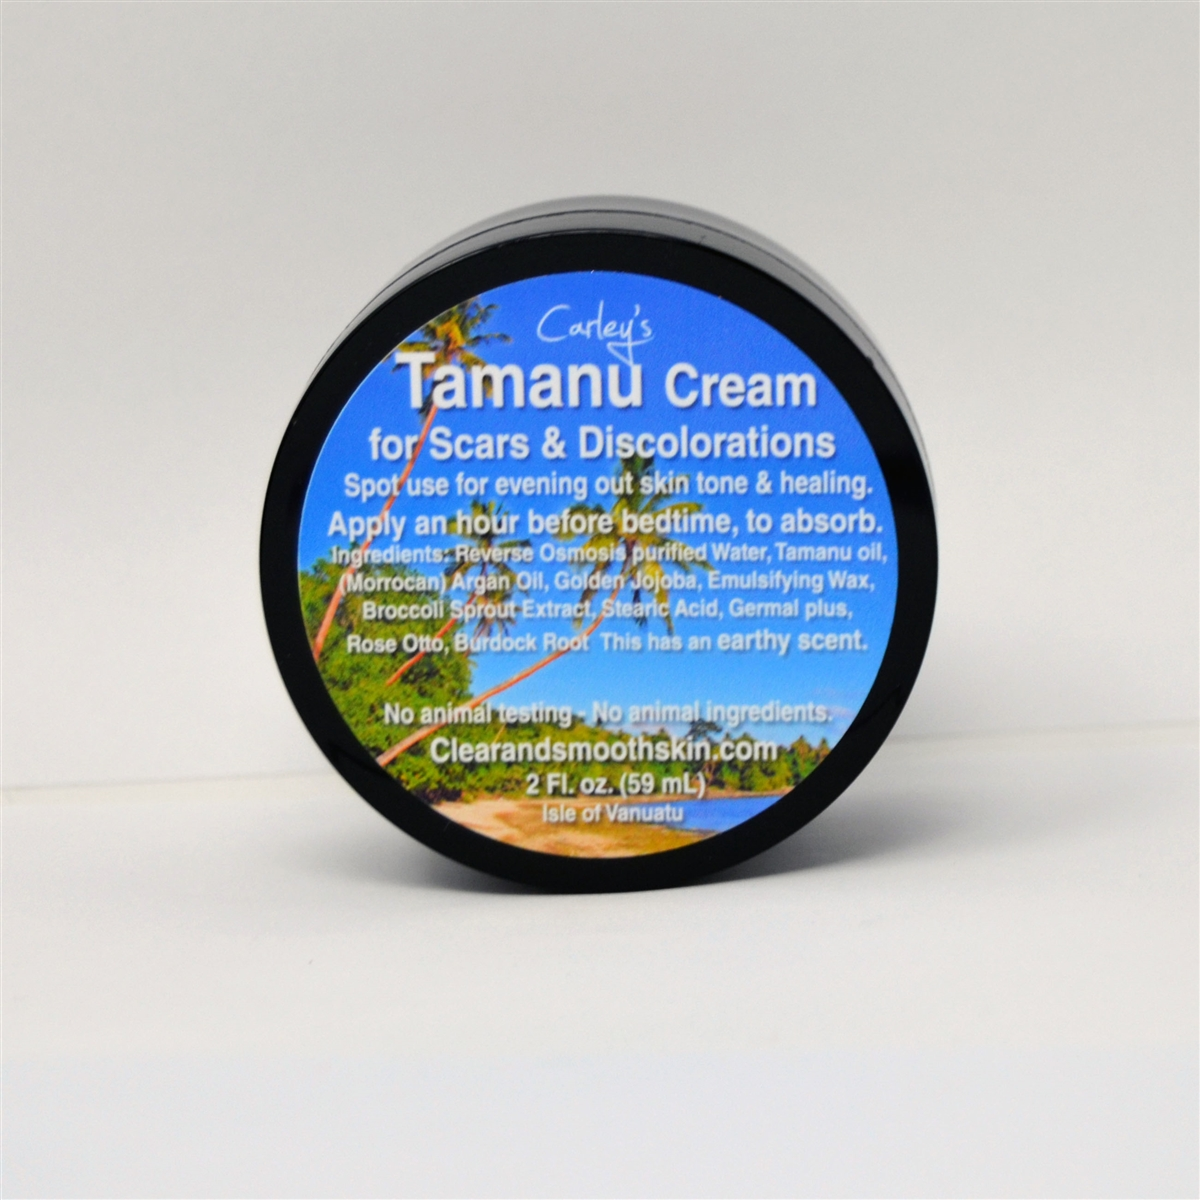 Carley's Tamanu Cream for Scars & Discolorations